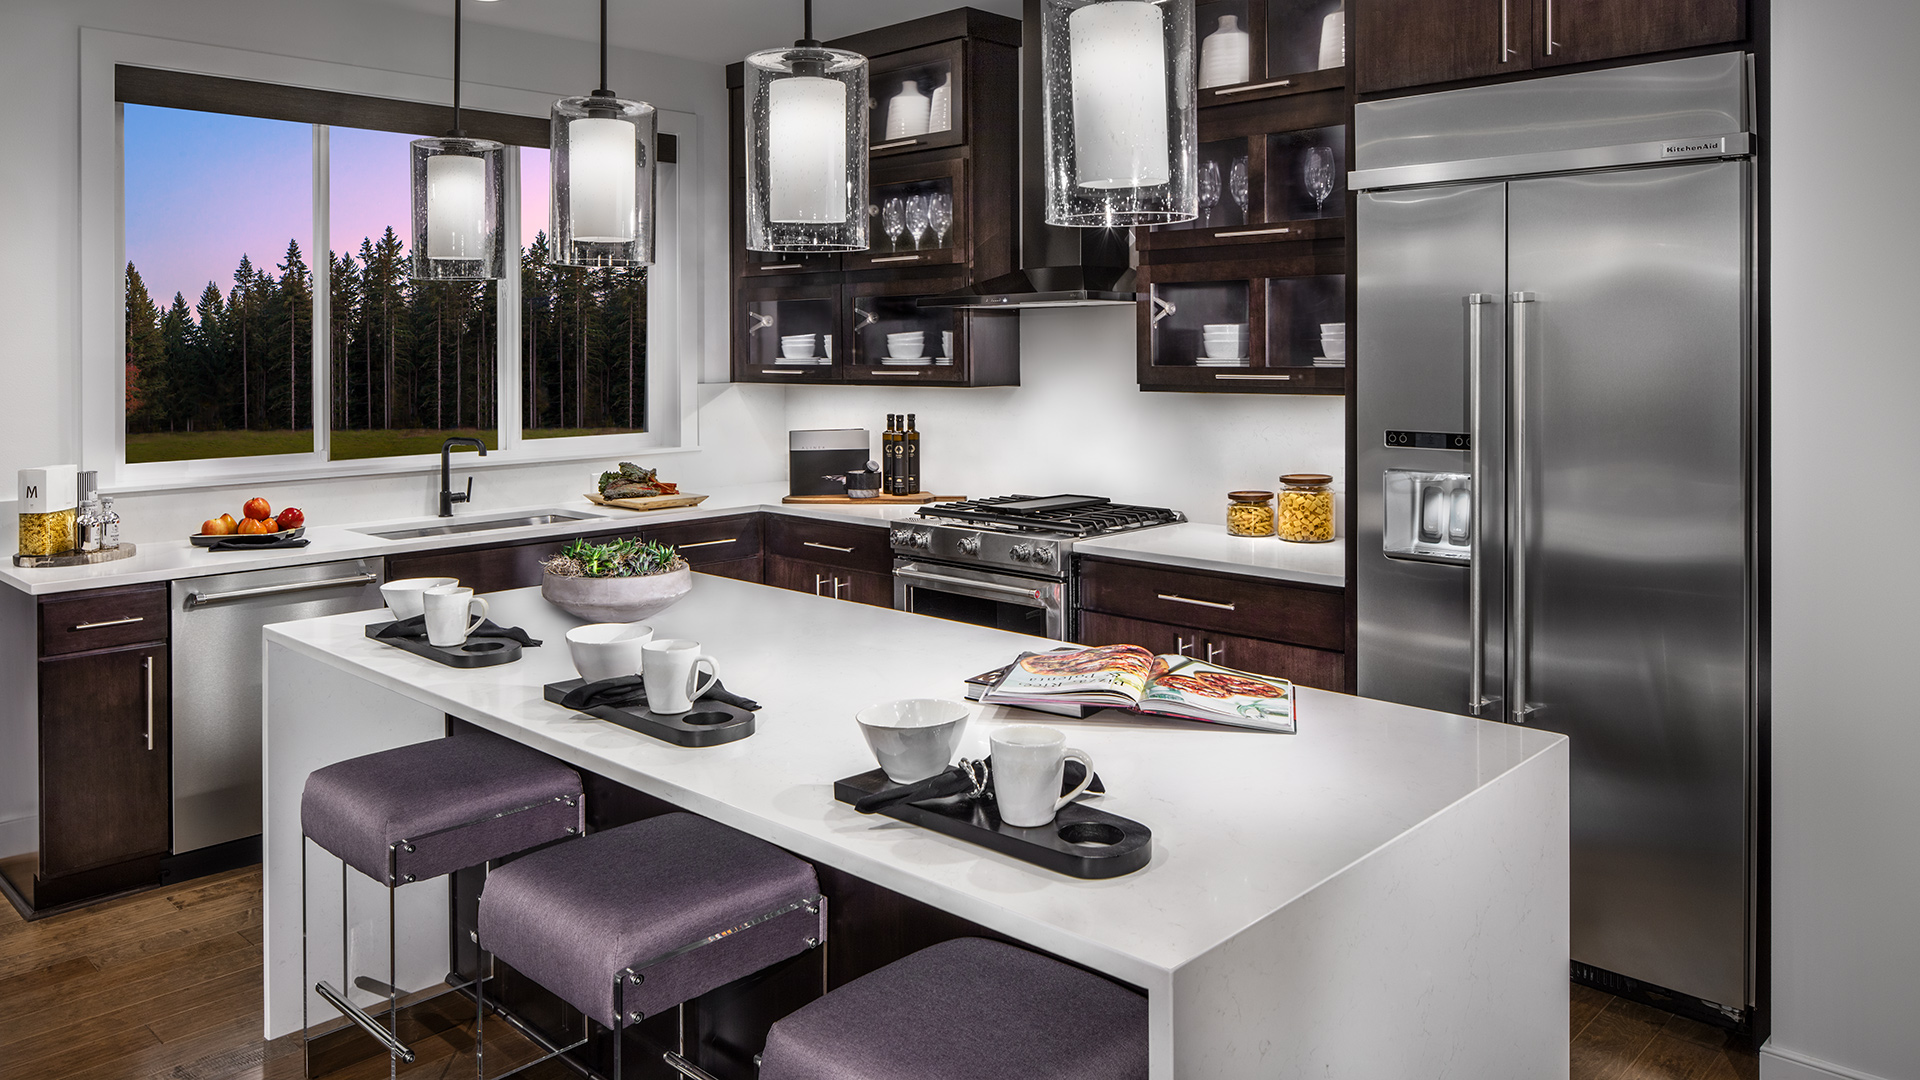 Create a show-stopping kitchen with the help of our designers at the Kirkland Design Studio